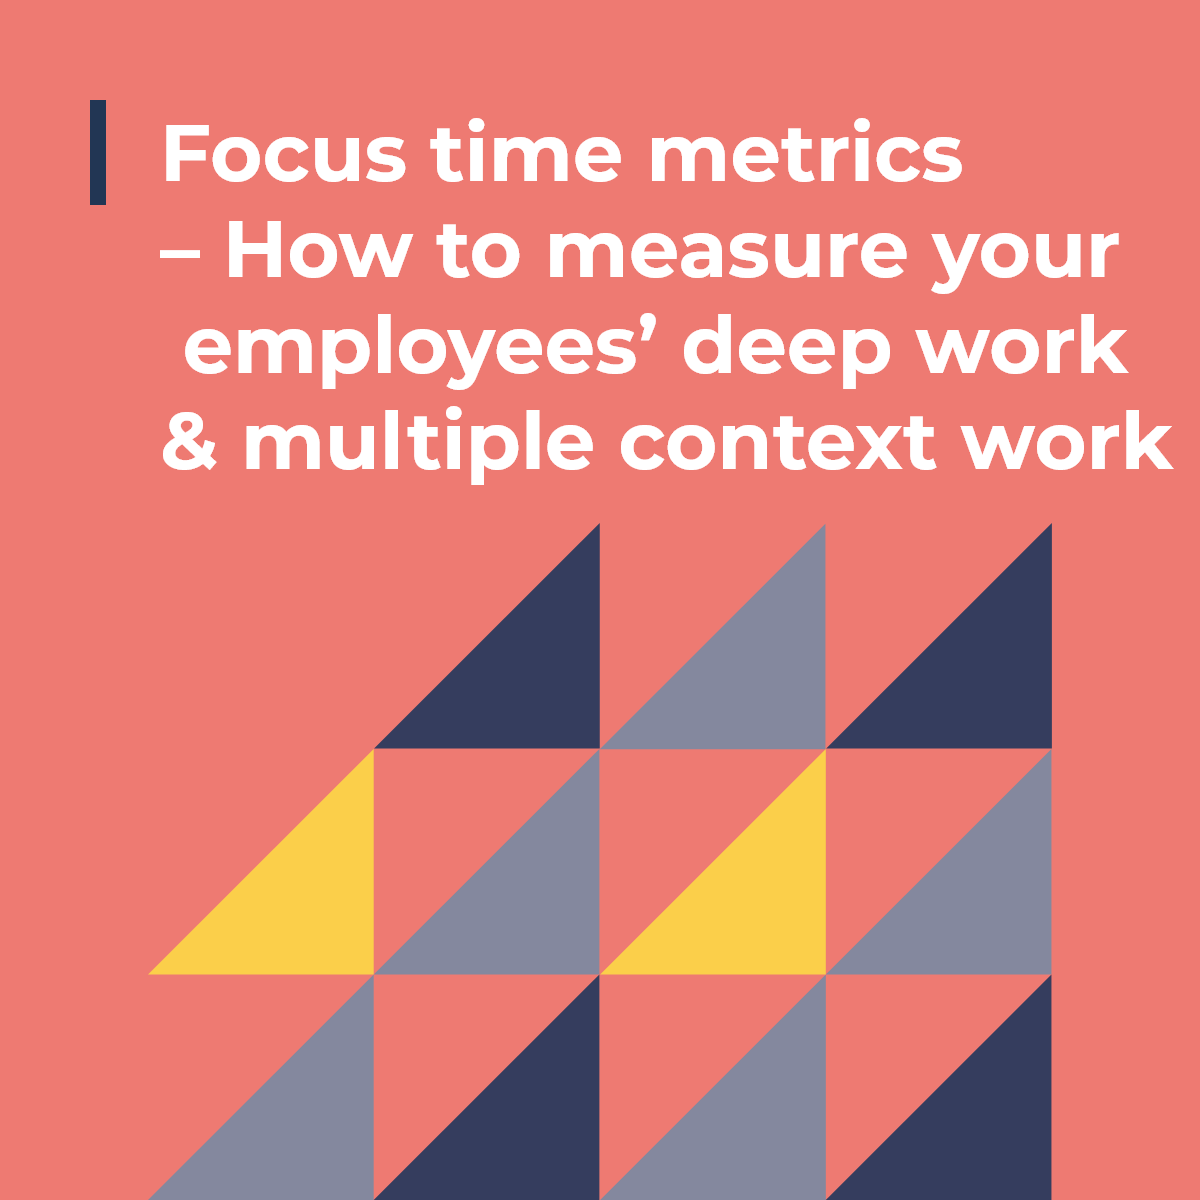 Focus time metrics – How to measure your employees' deep work & multiple context work